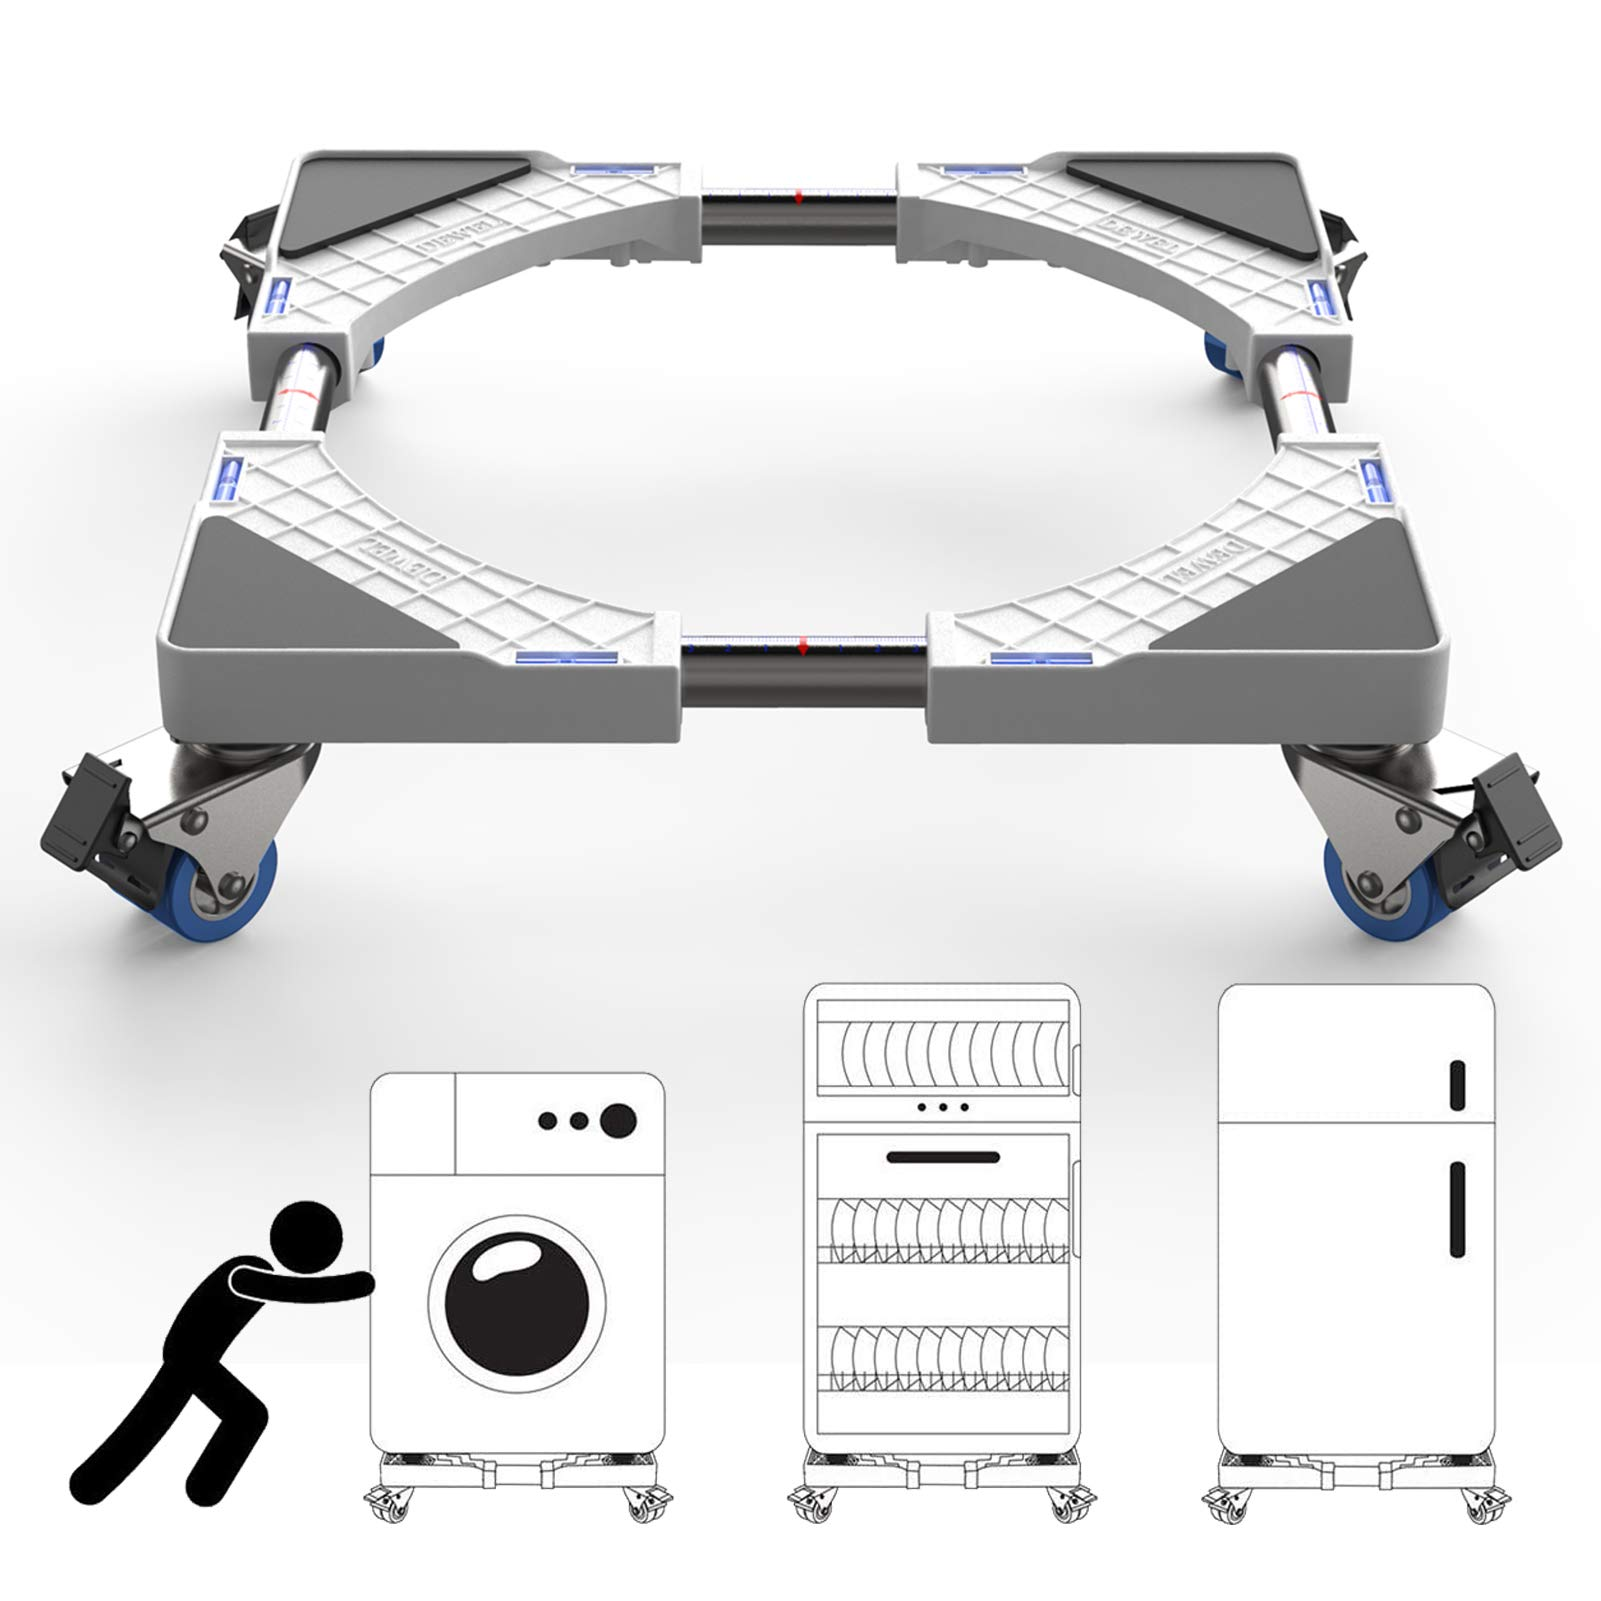 Washer and Dryer Stand Base, Free of Installation Universal Mobile Base, Multi-Functional Movable Adjustable Base Stand with 4 Double Wheels for Washing Machine and Refrigerator